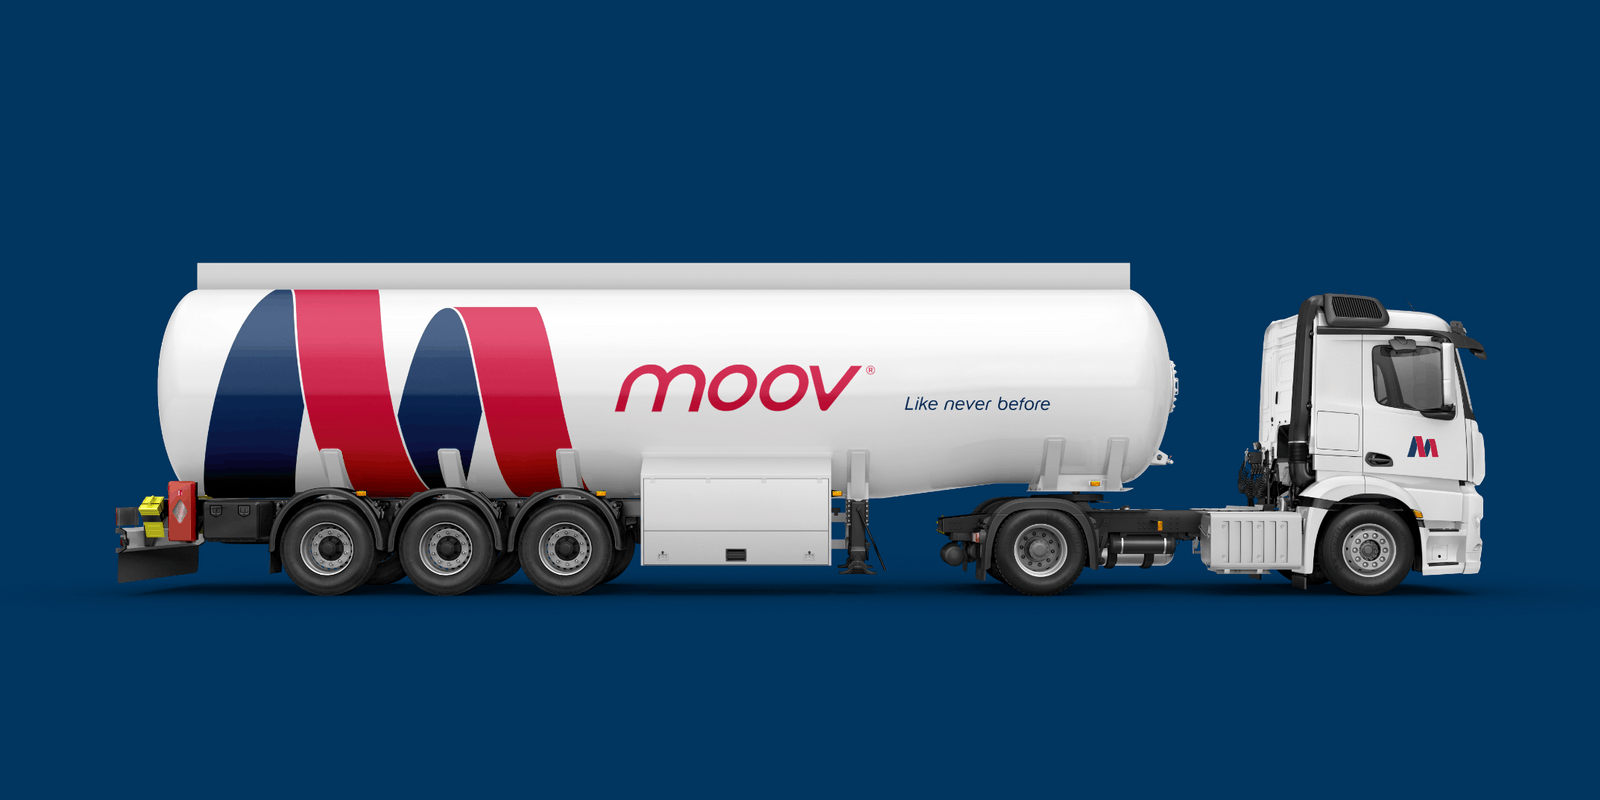 Creative Caterpillar client MOOV truck logo application.